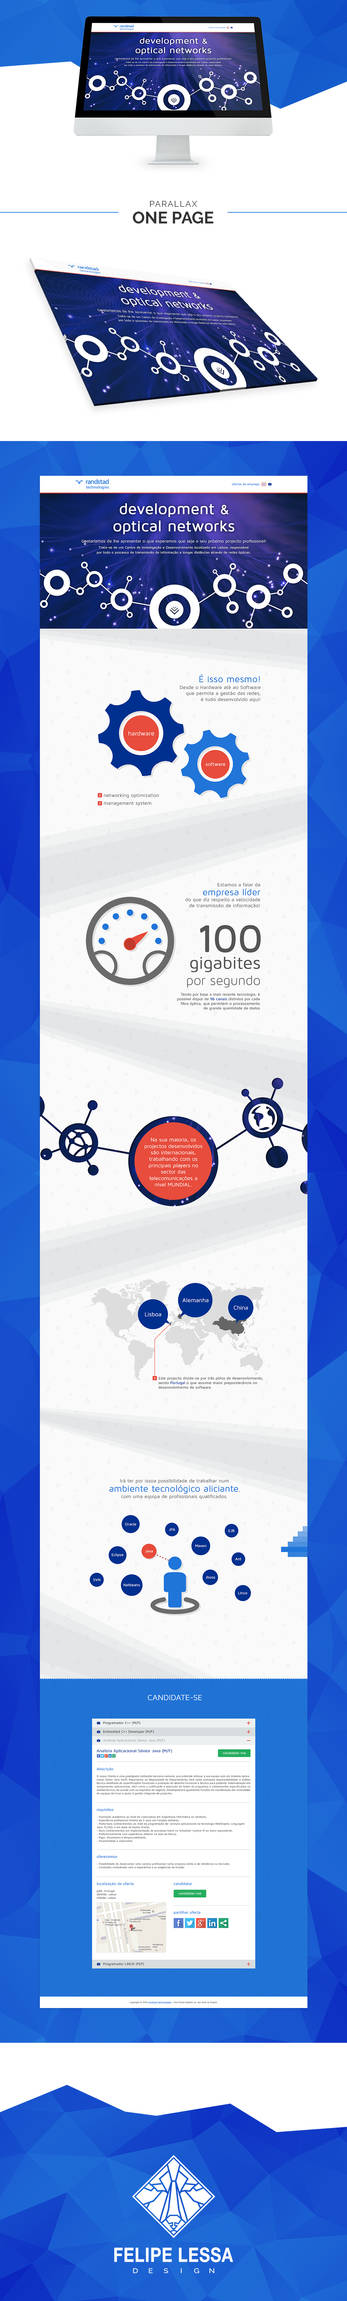 Randstad Technologies - One Page